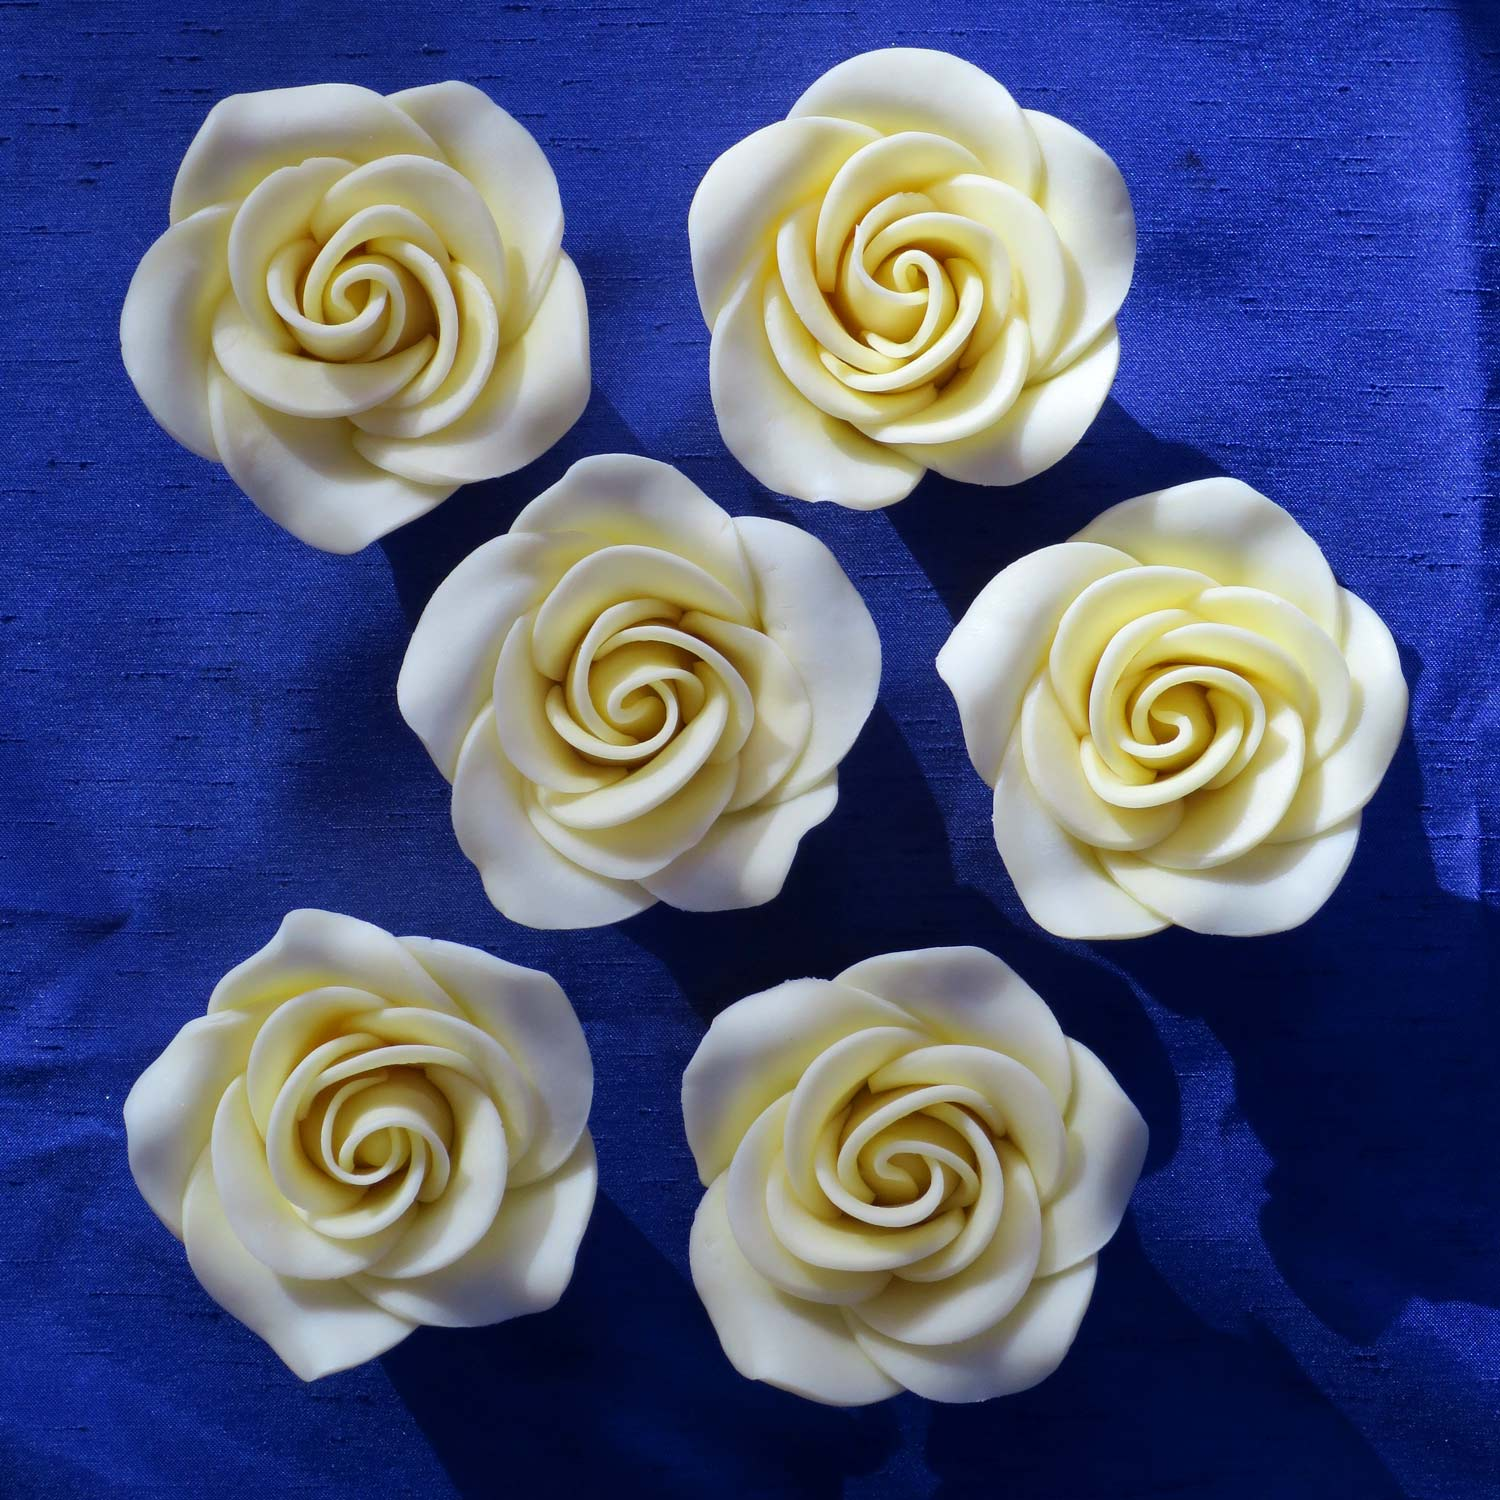 Giant White Chocolate Roses